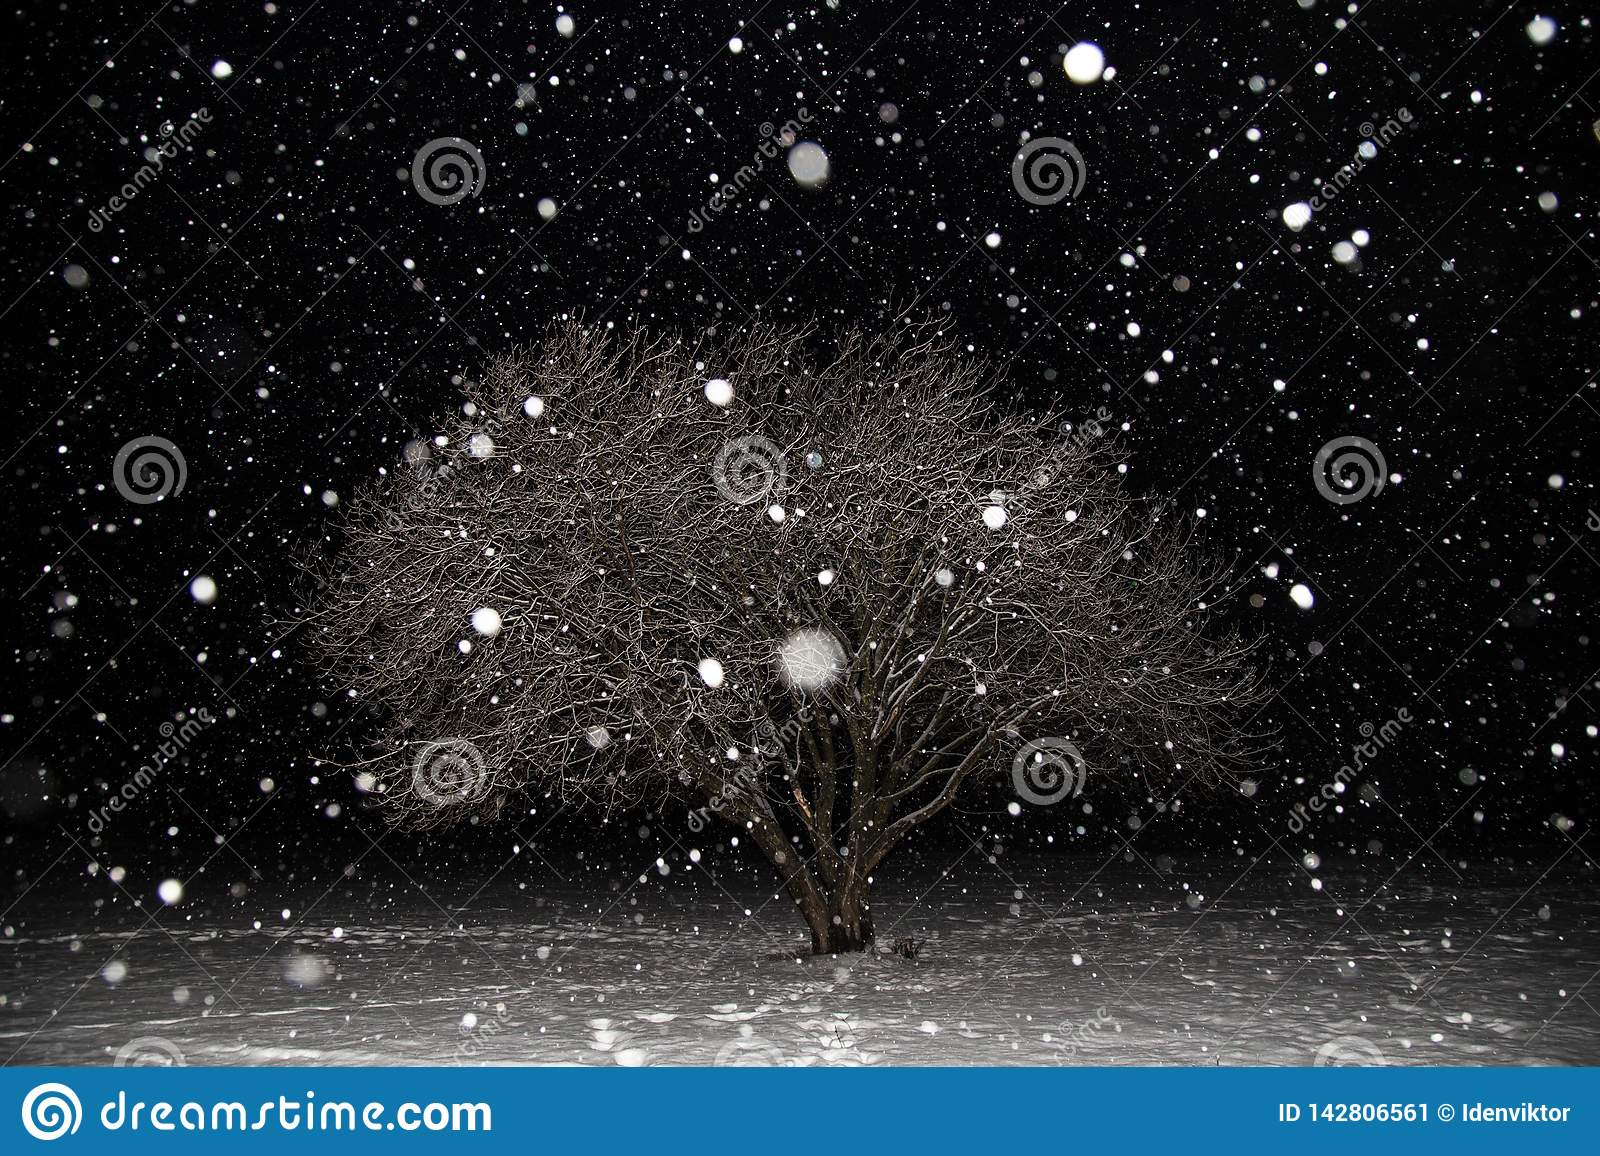 Snowfall, blizzard, snow flakes, winter tree covered snow at night. Beautiful minimalism landscape